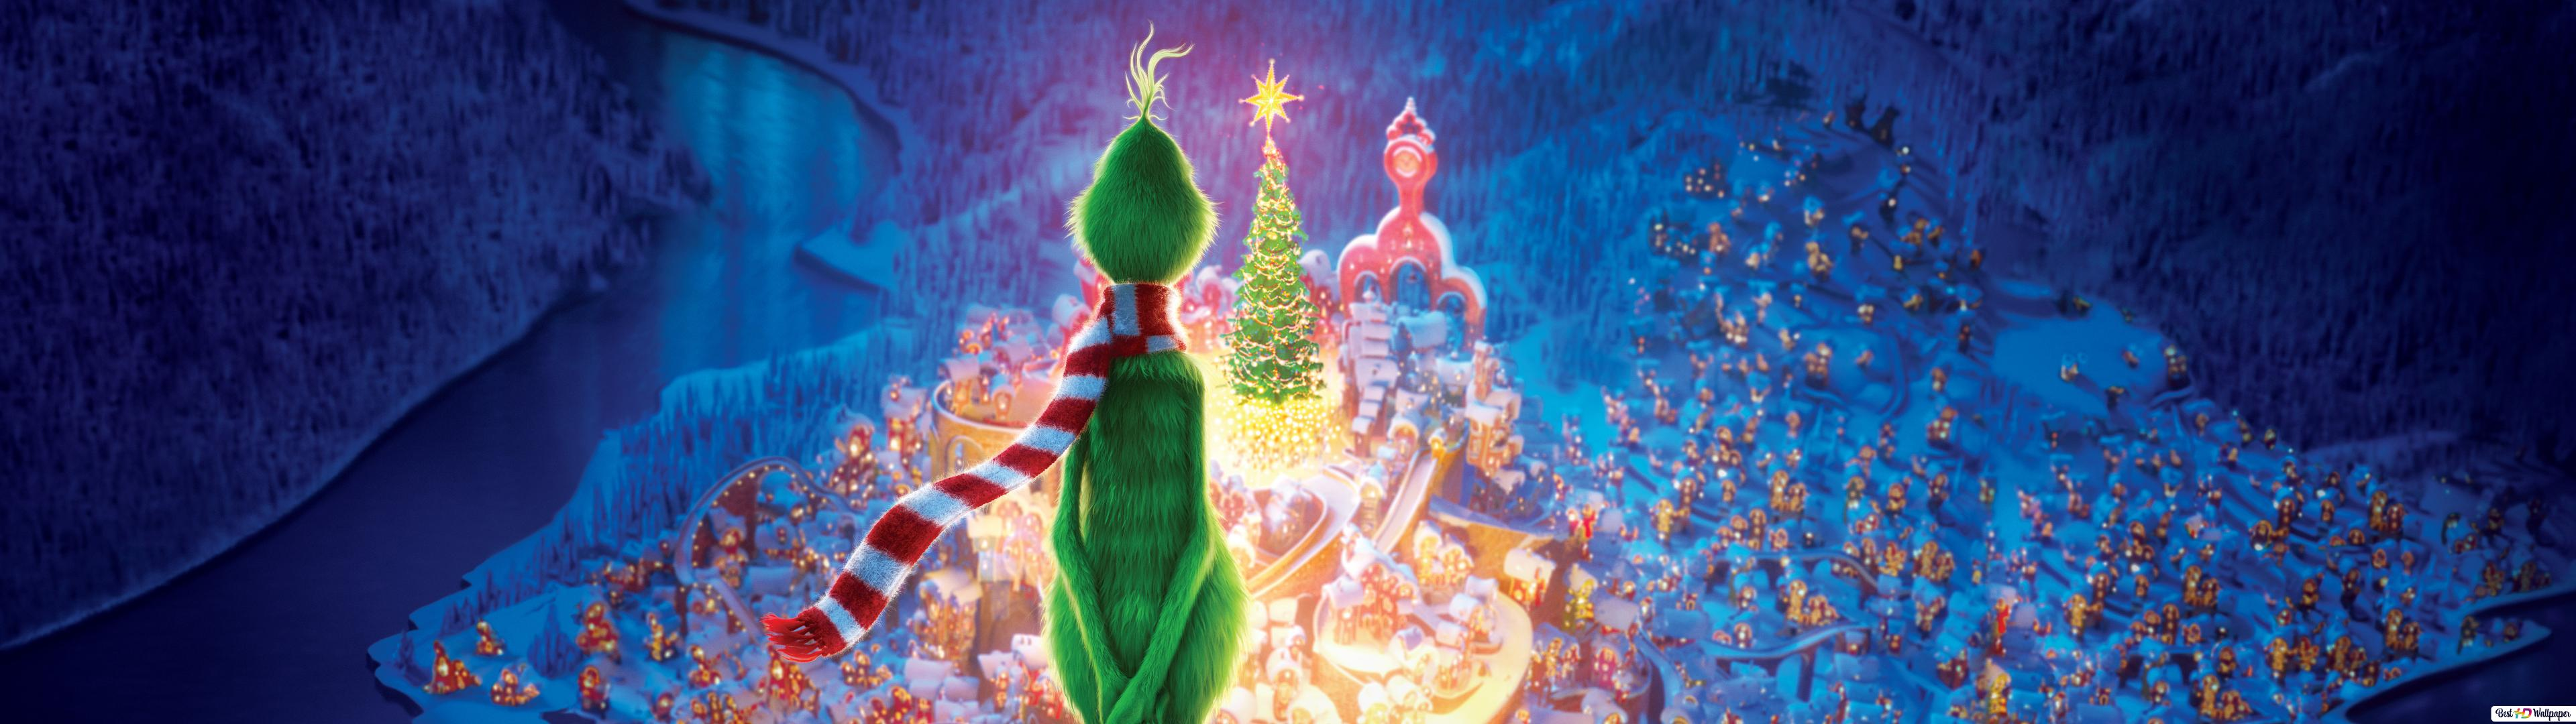 Mr Grinch And Max Celebrating Christmas Hd Wallpaper Download